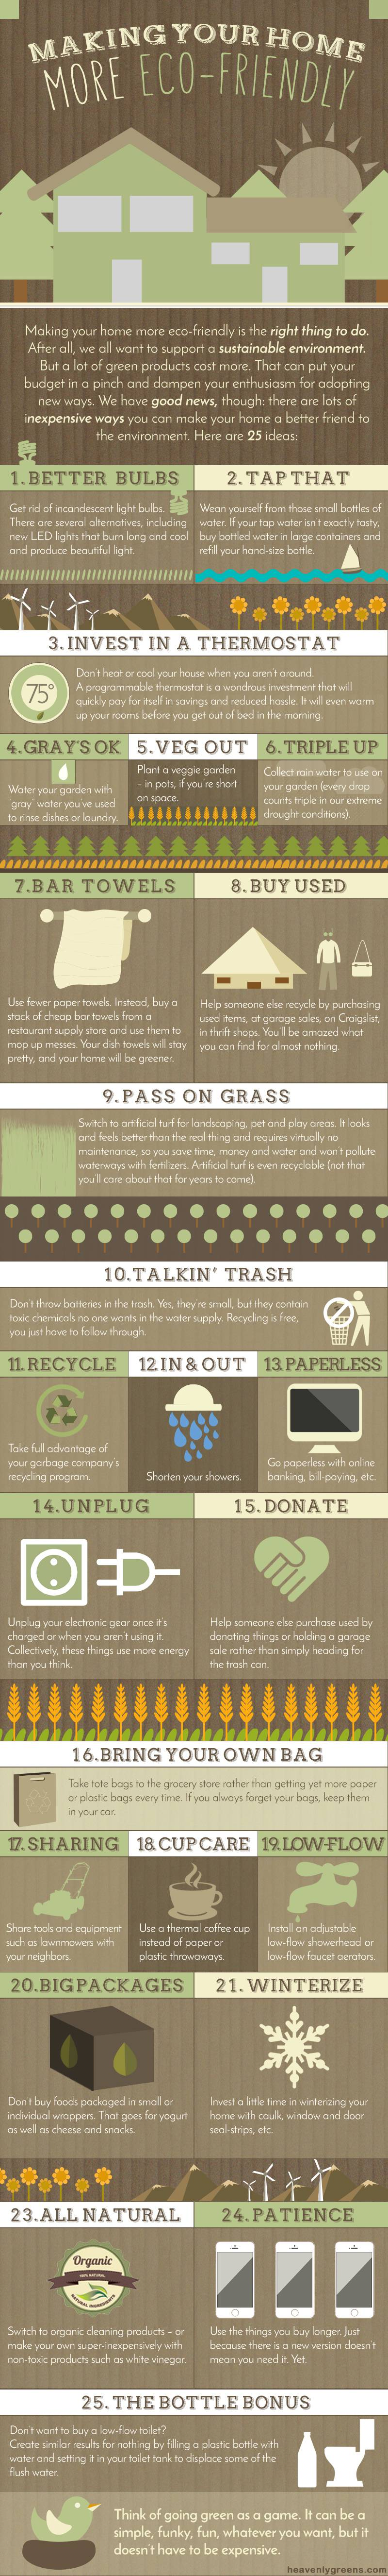 Make-your-home-greener-final__condensed